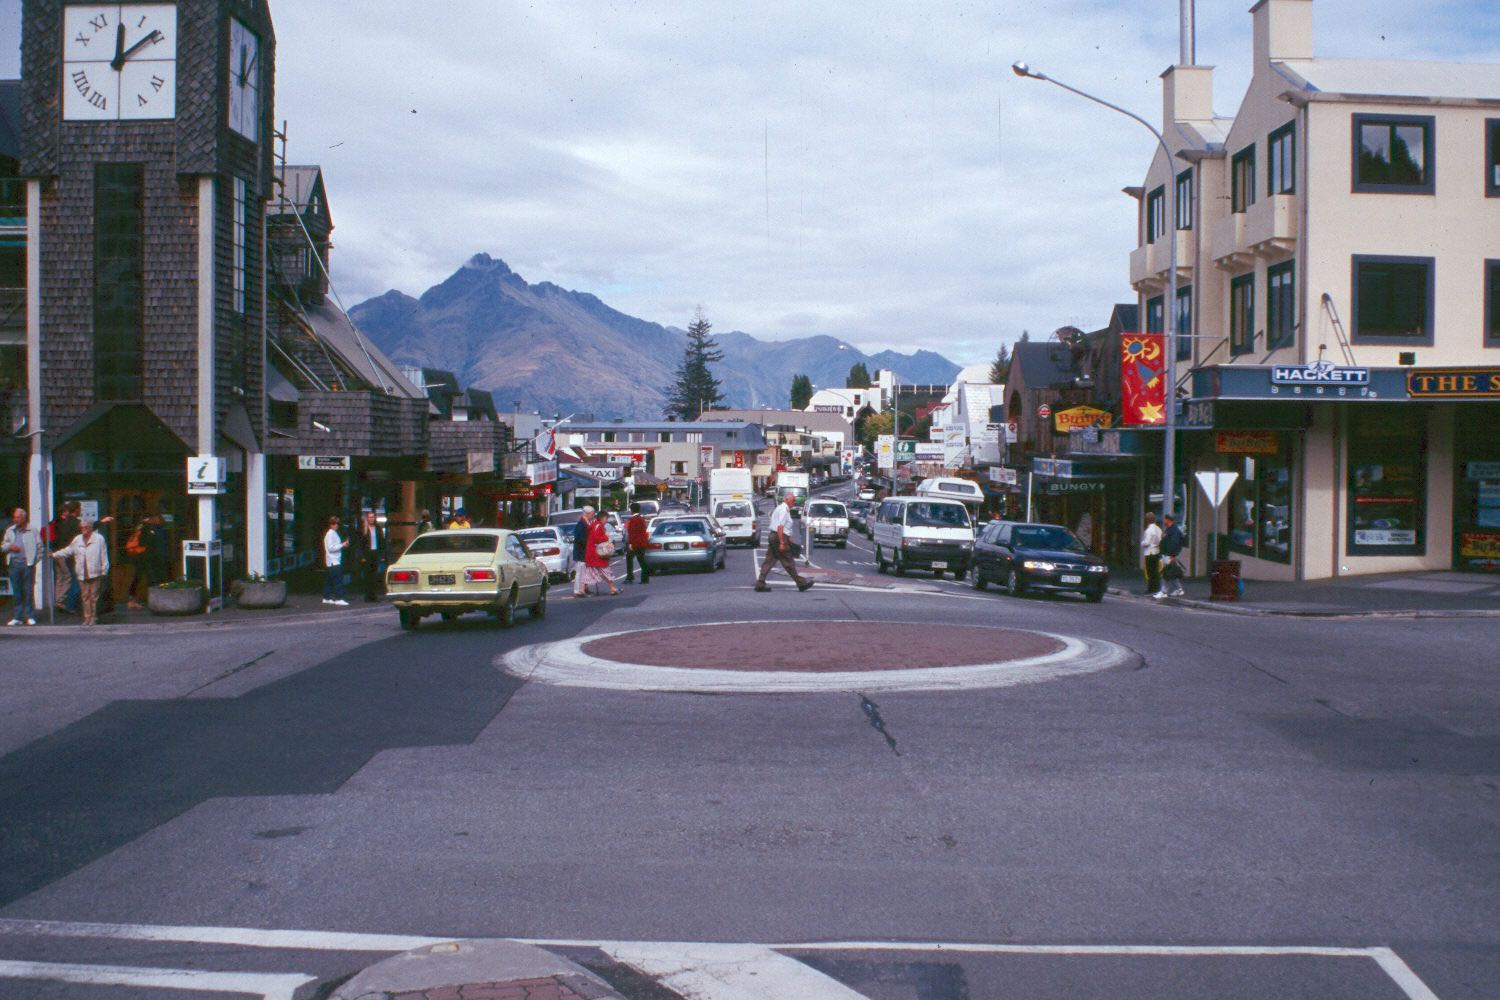 Queenstown New Zealand roundabout